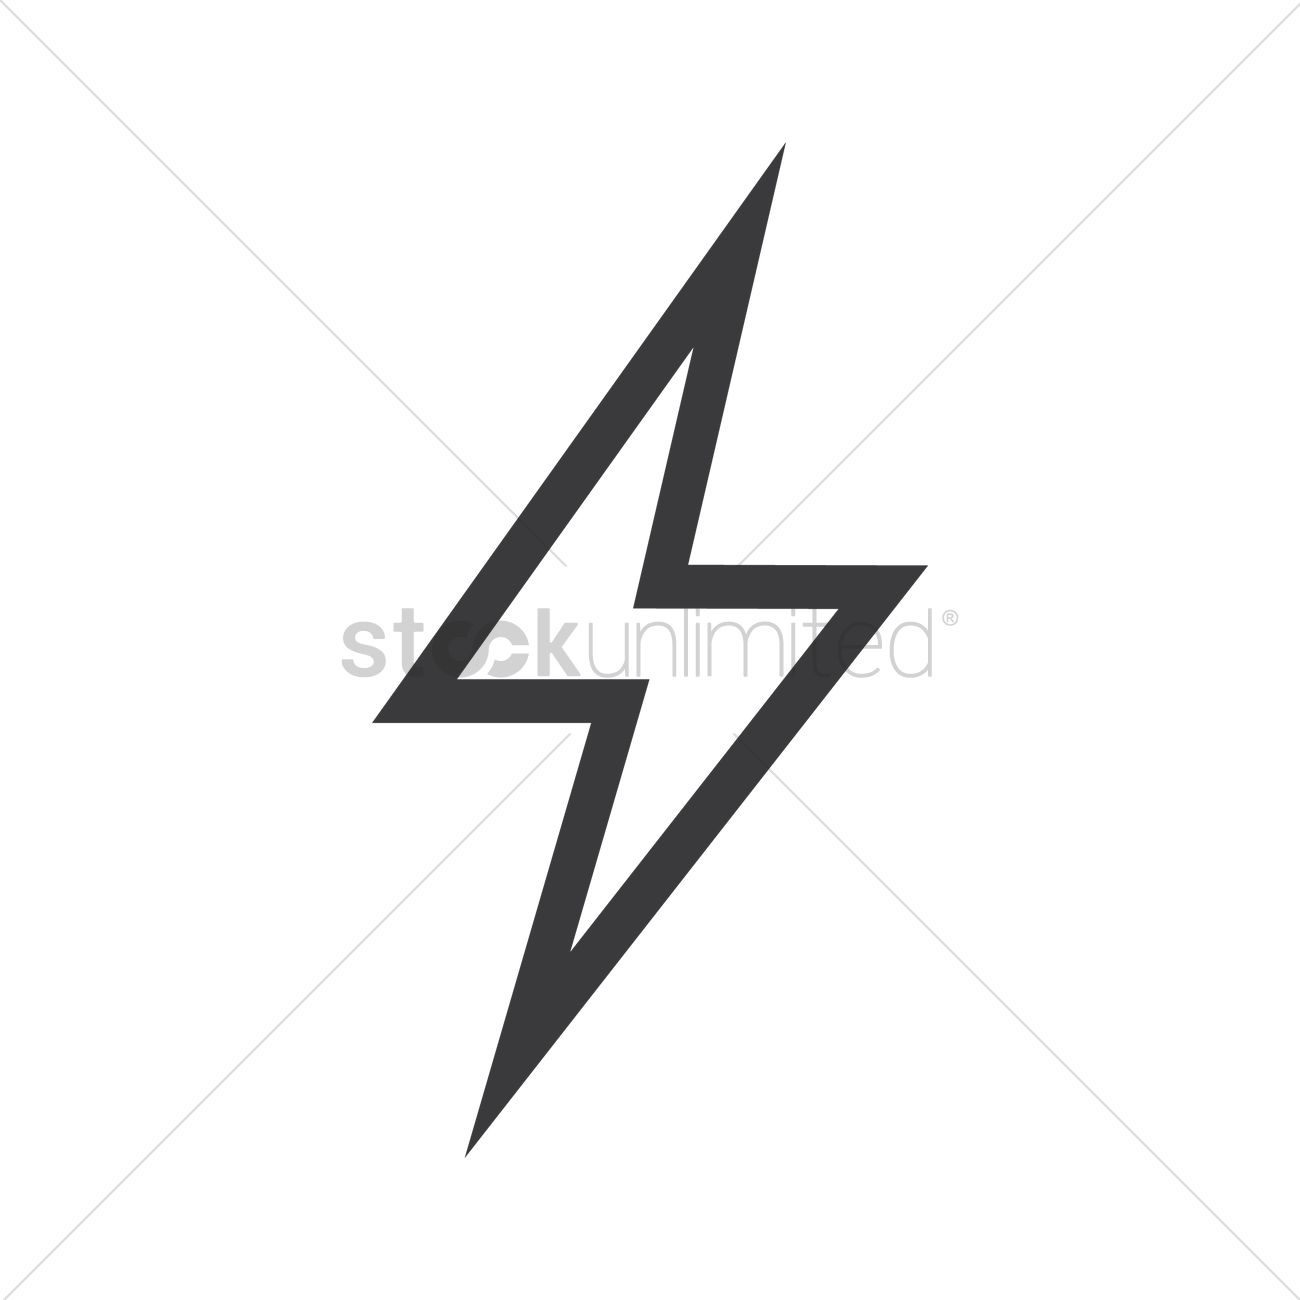 free thunder vector image 1280171 stockunlimited free thunder vector image 1280171